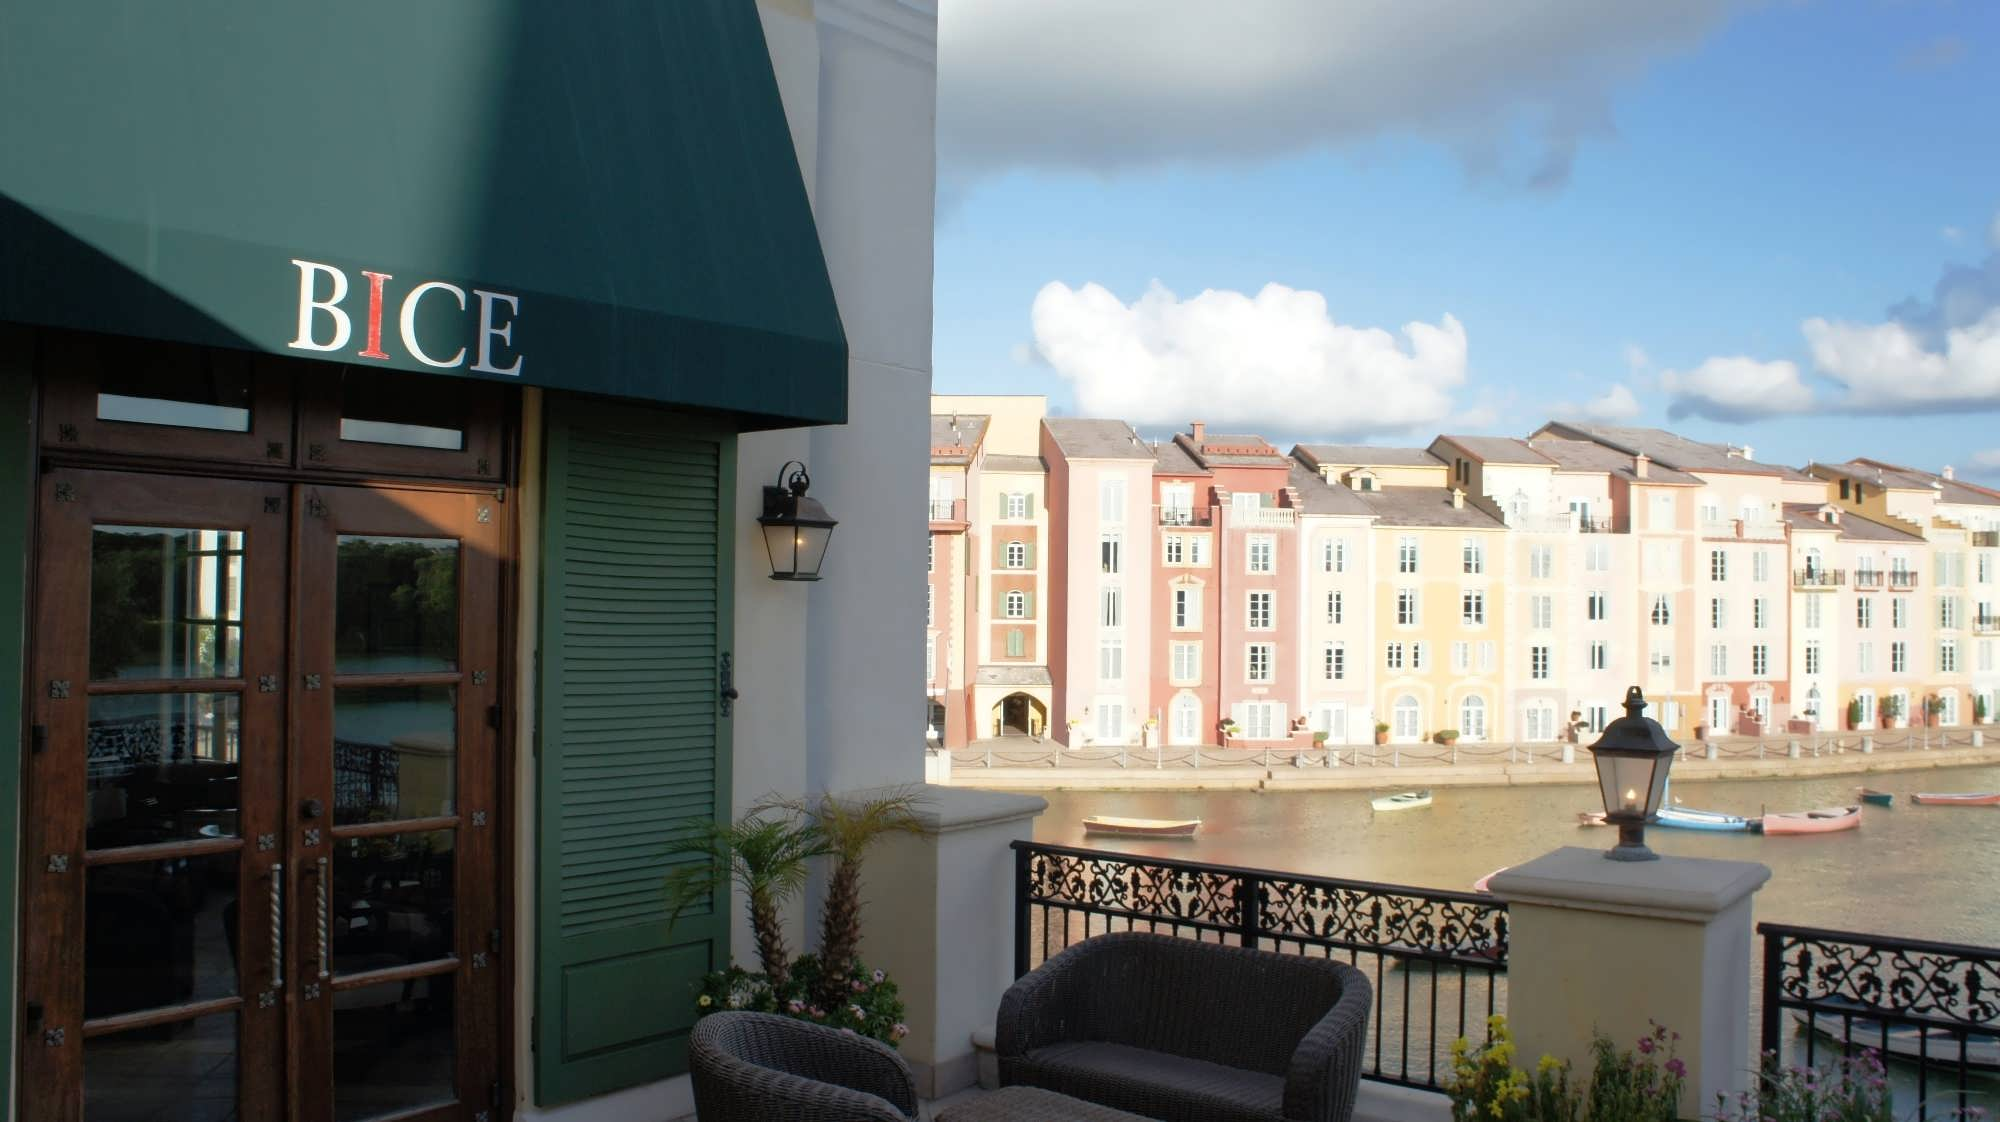 The beautiful view of the harbor from the Bice patio at Portofino Bay Hotel